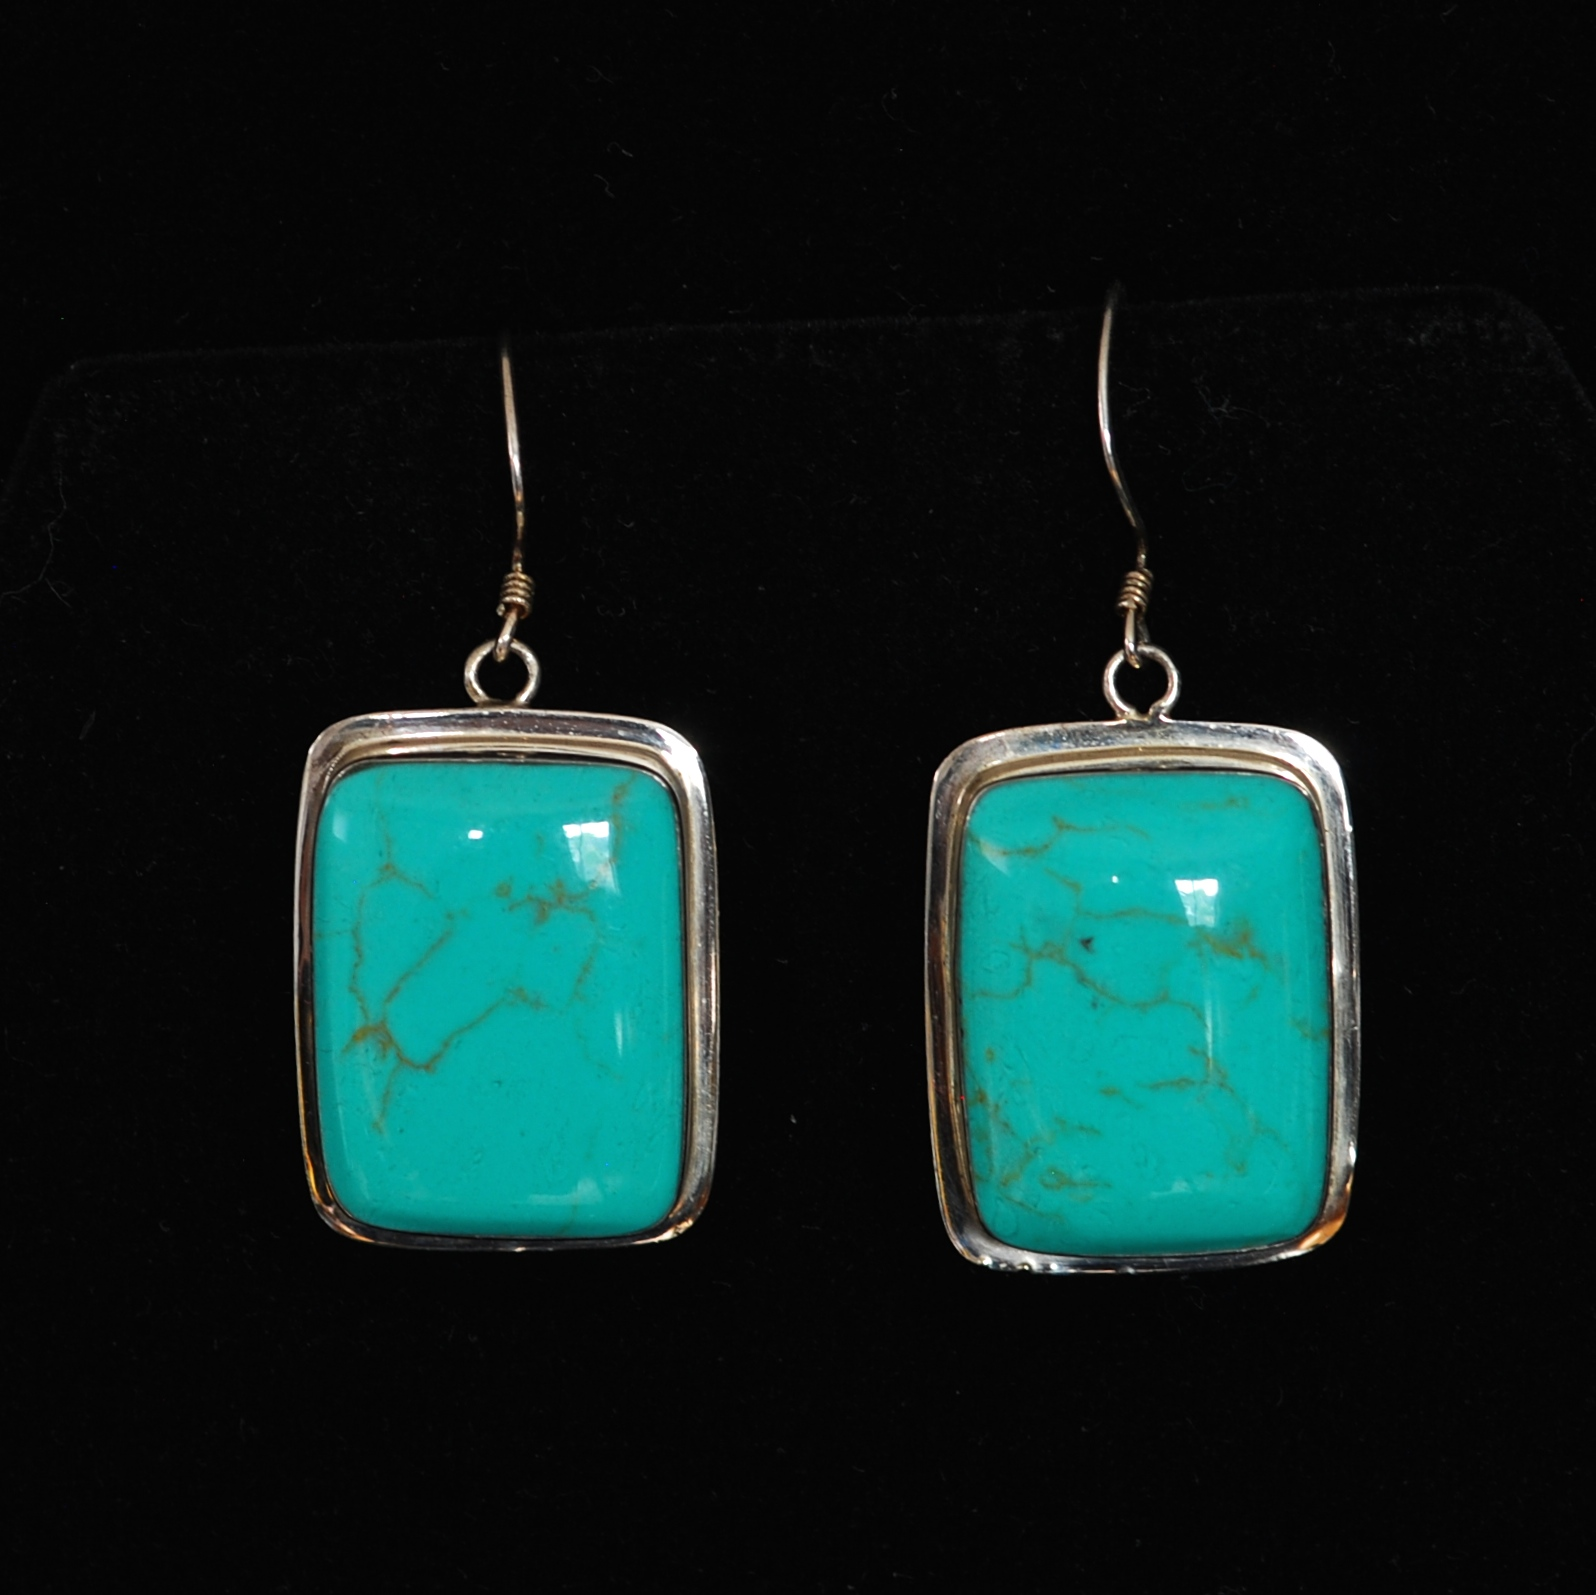 Large Sterling Silver Modernist Square Turquoise Earrings With A Light Matrix 925